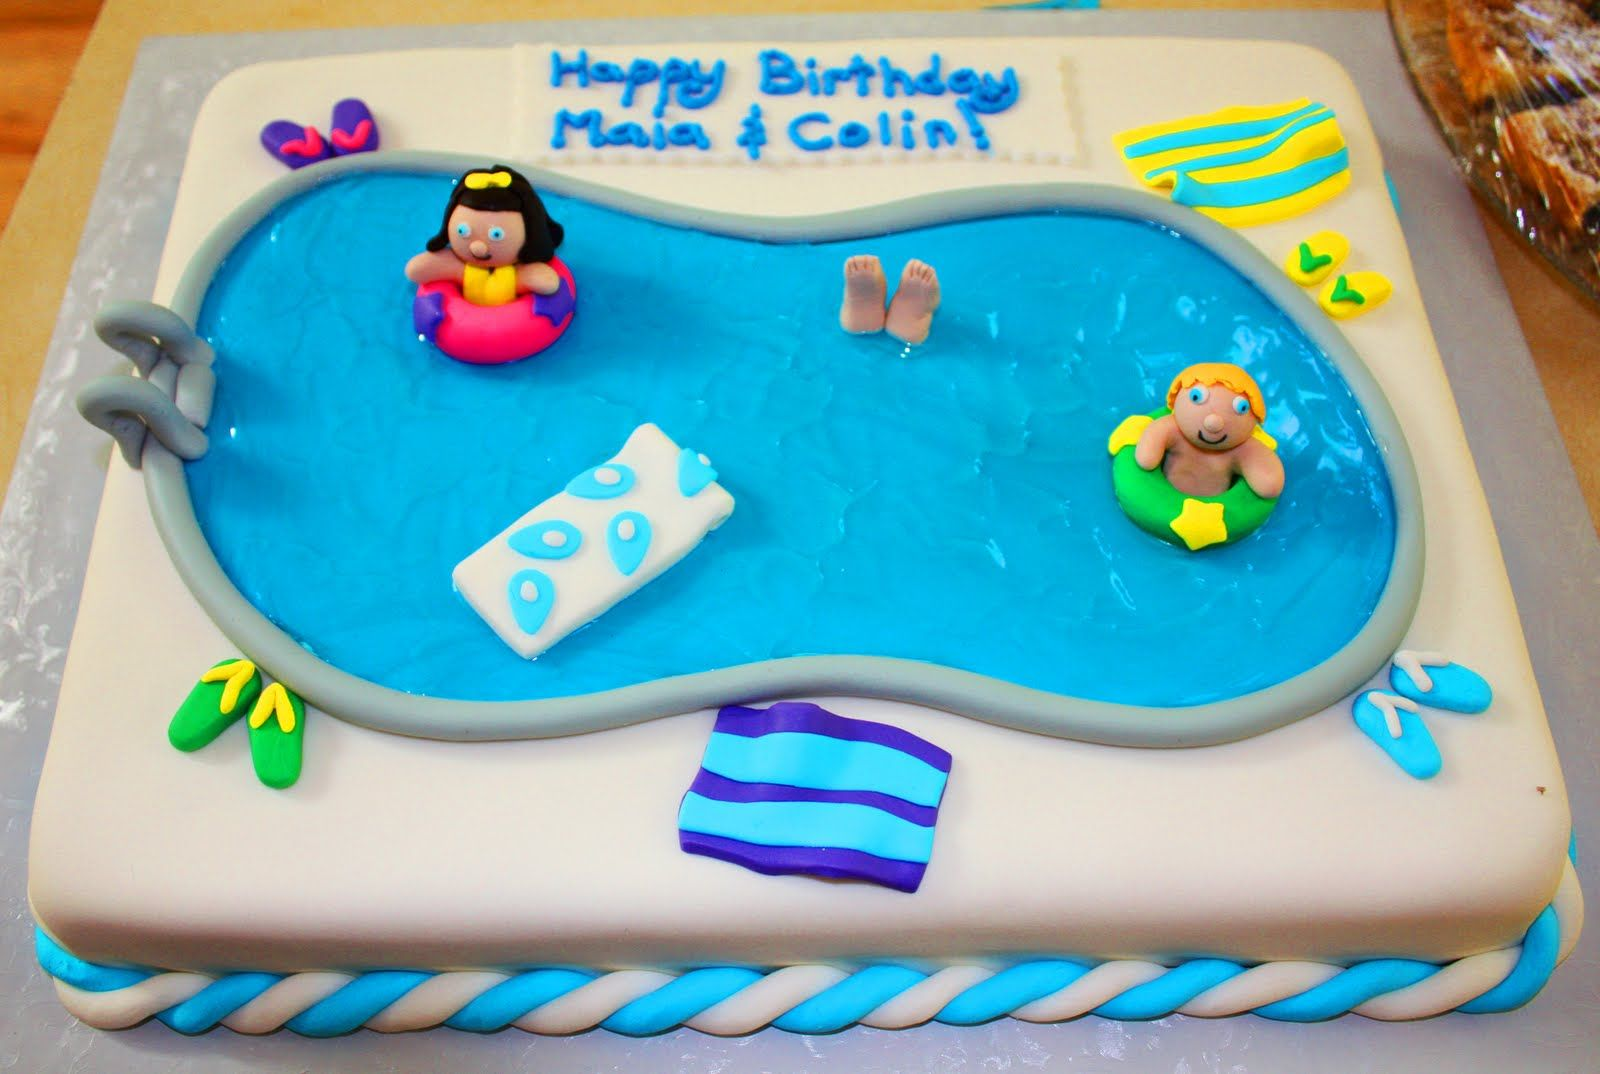 Pool party cakes for girls we decided to have a pool party pool party cakes for girls we decided to have a pool party sciox Choice Image